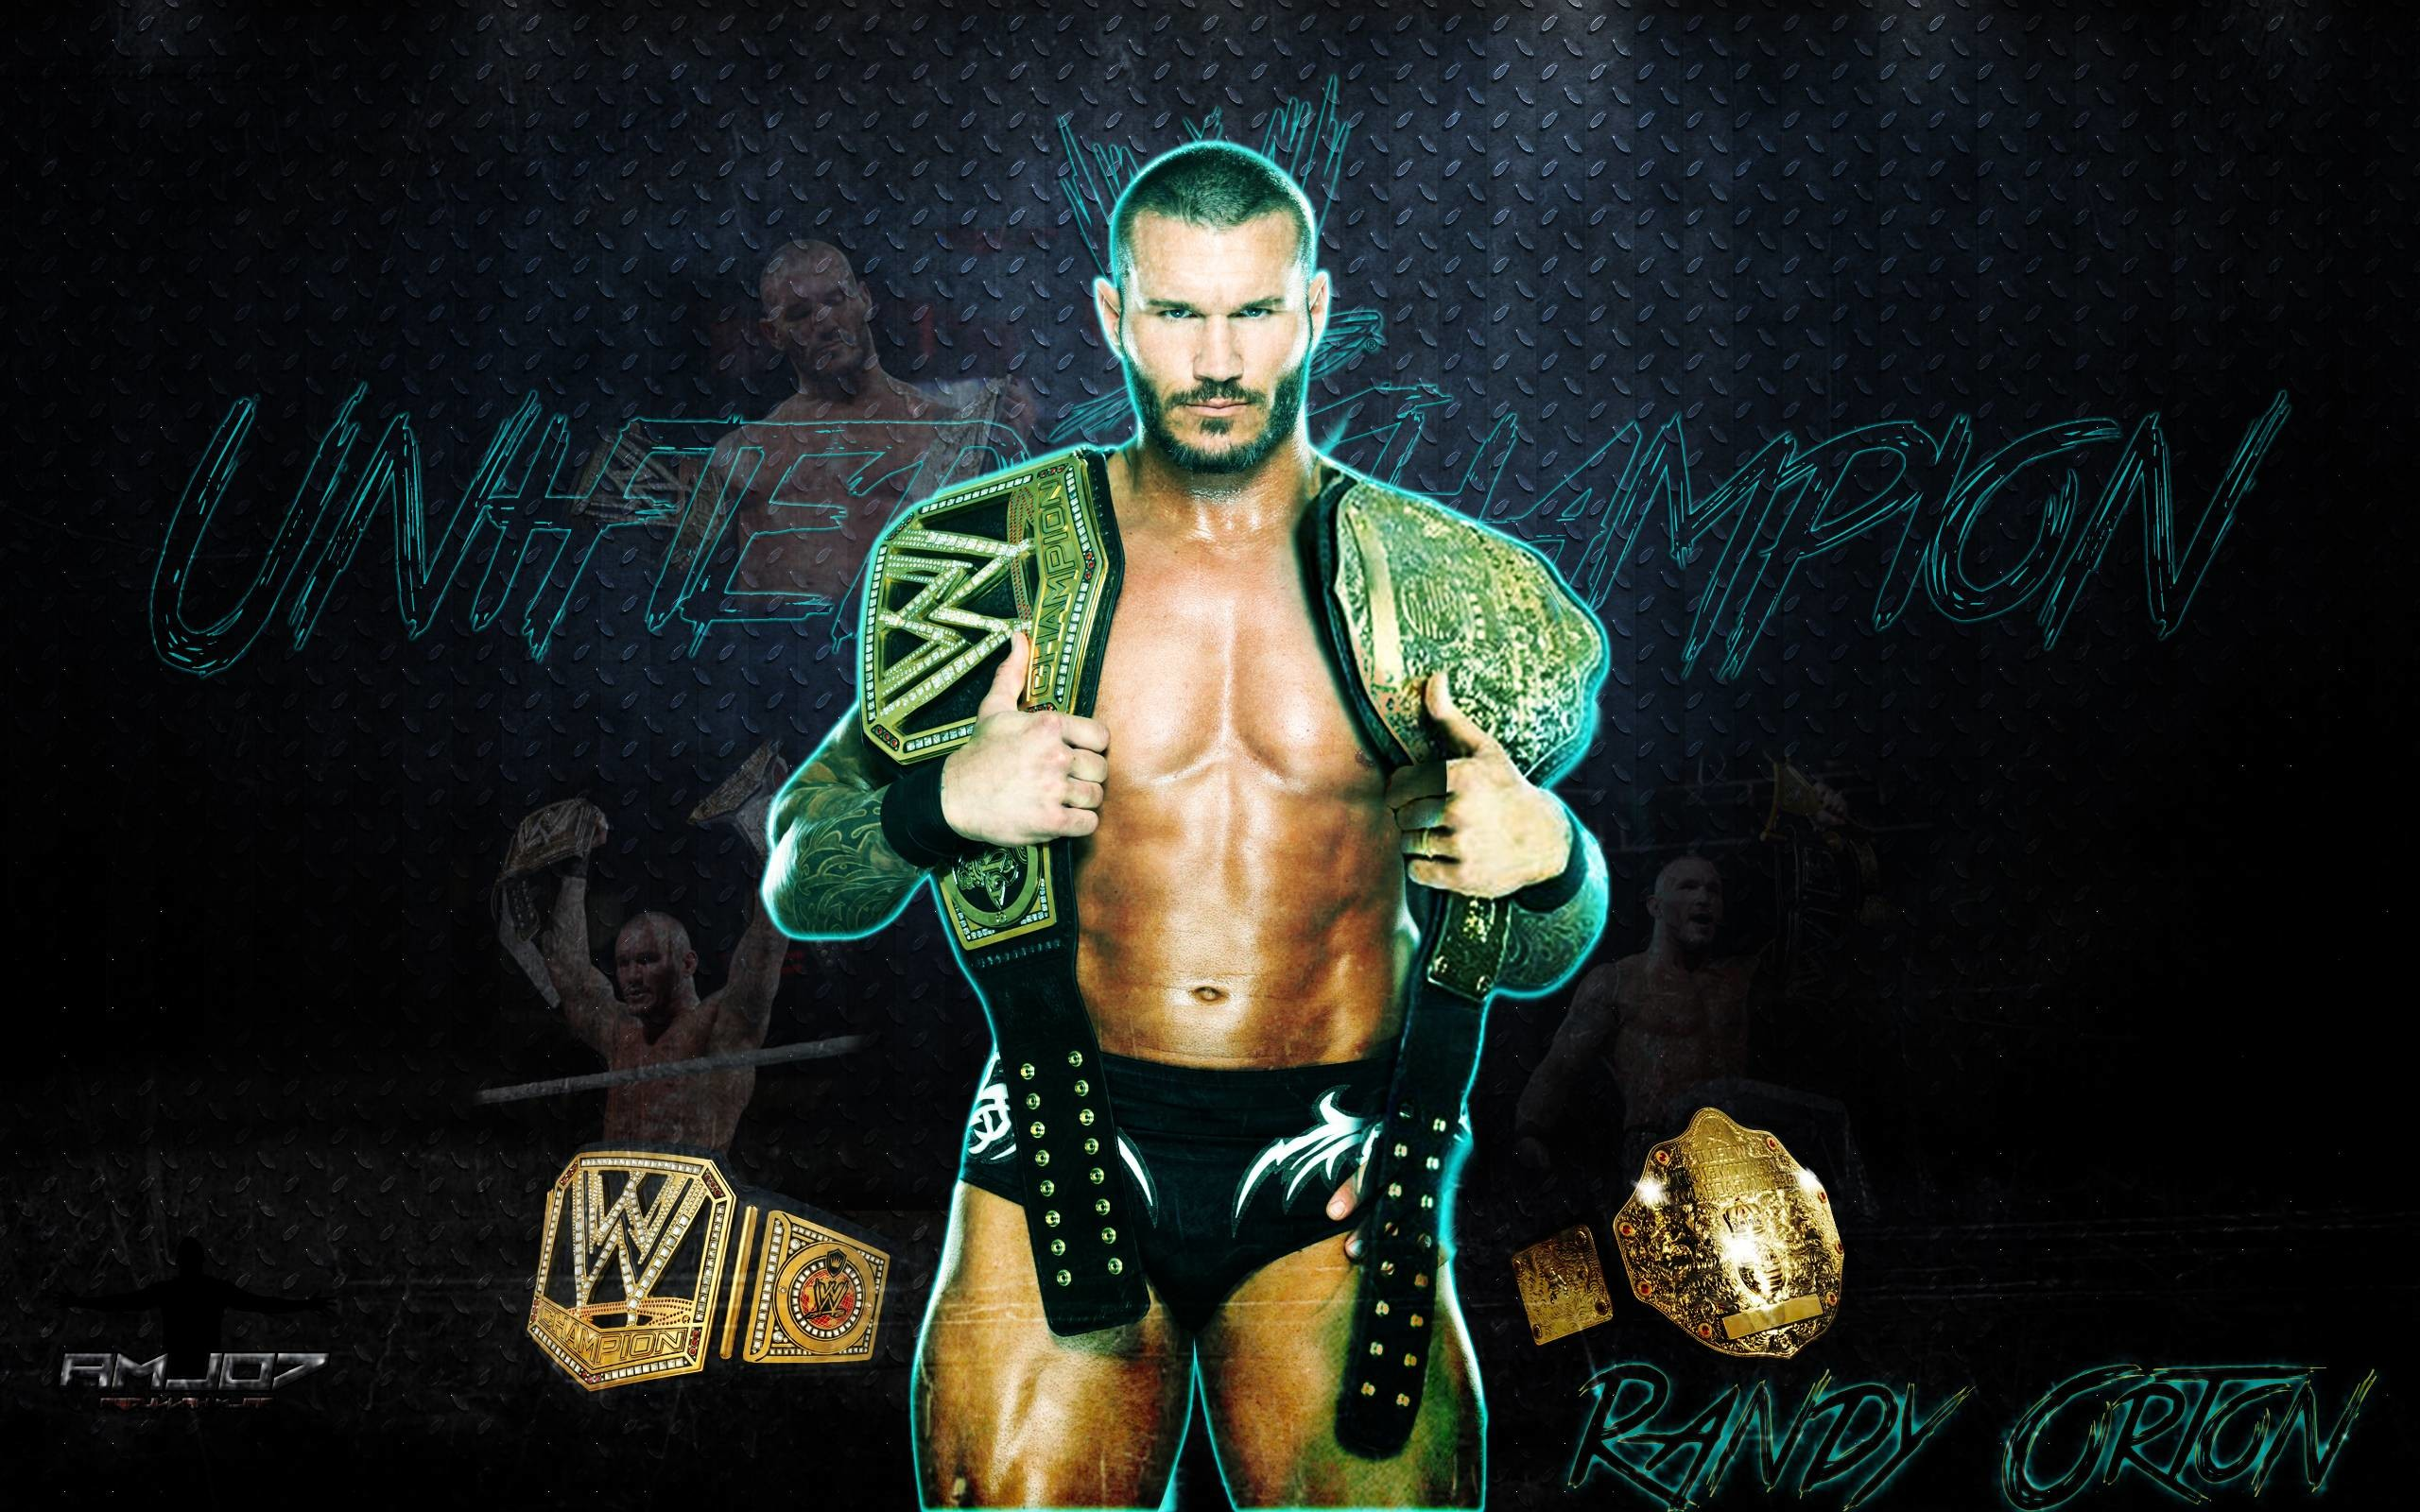 2560x1600 Randy Orton Hd Wallpapers